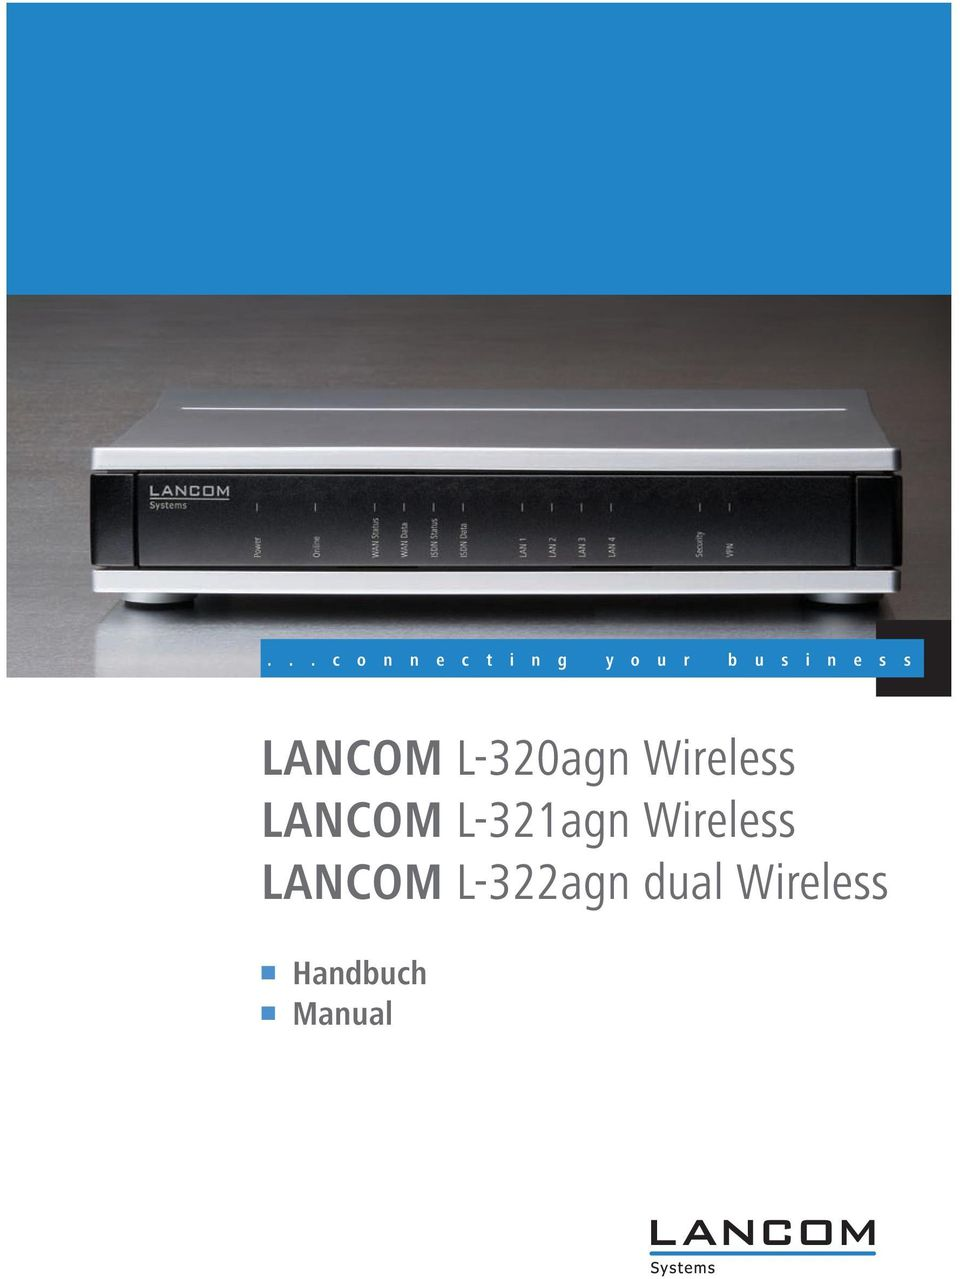 Wireless LANCOM L-321agn Wireless